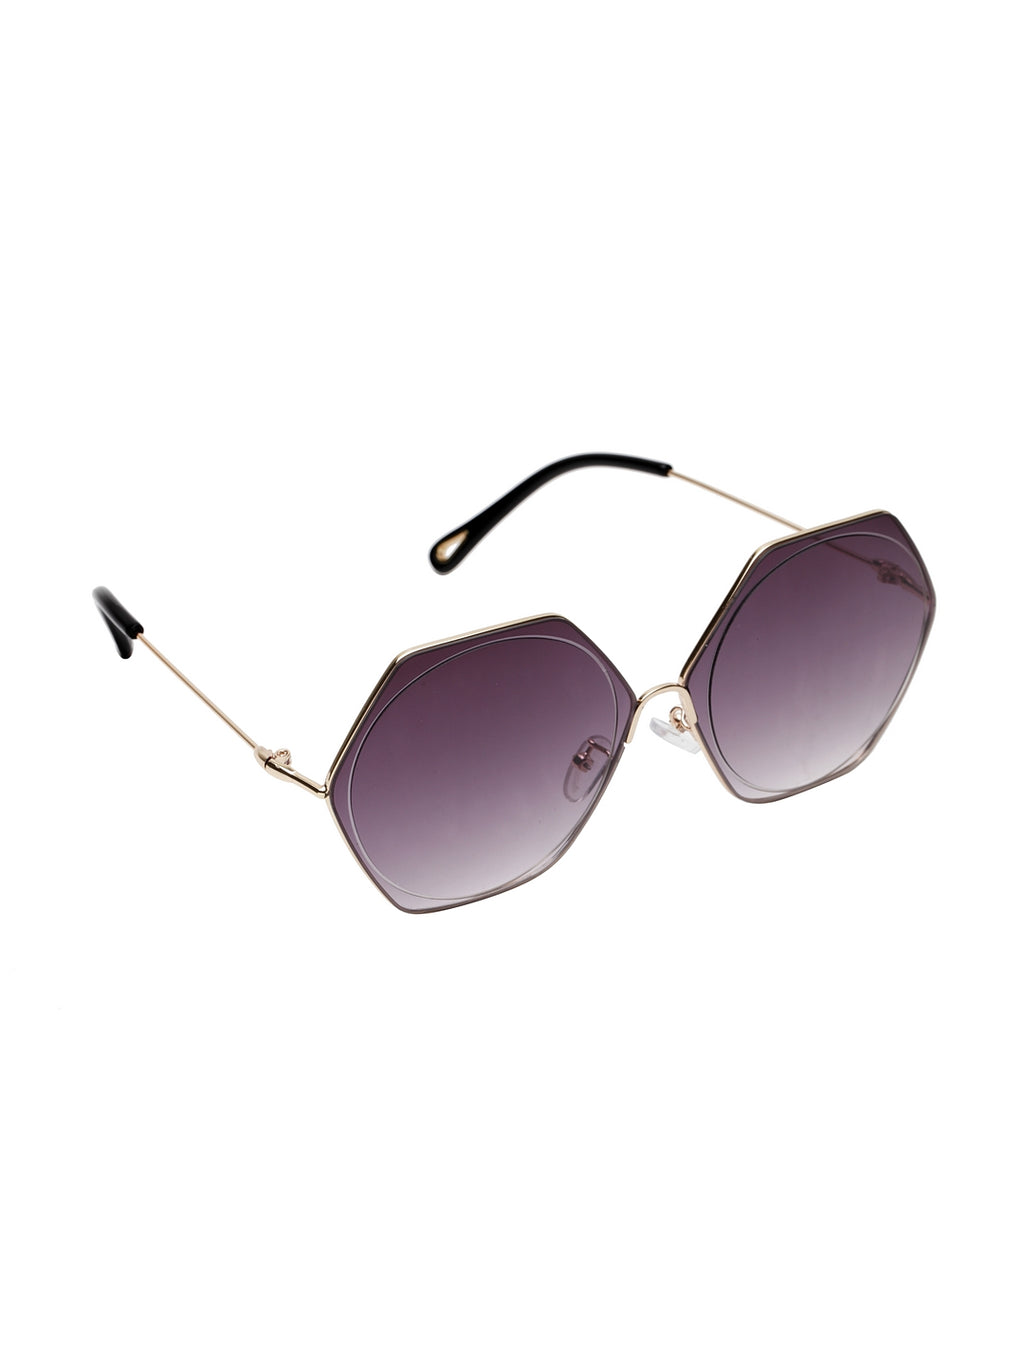 Avant-Garde Paris French Style CE UV400 Fashion Sunglasses